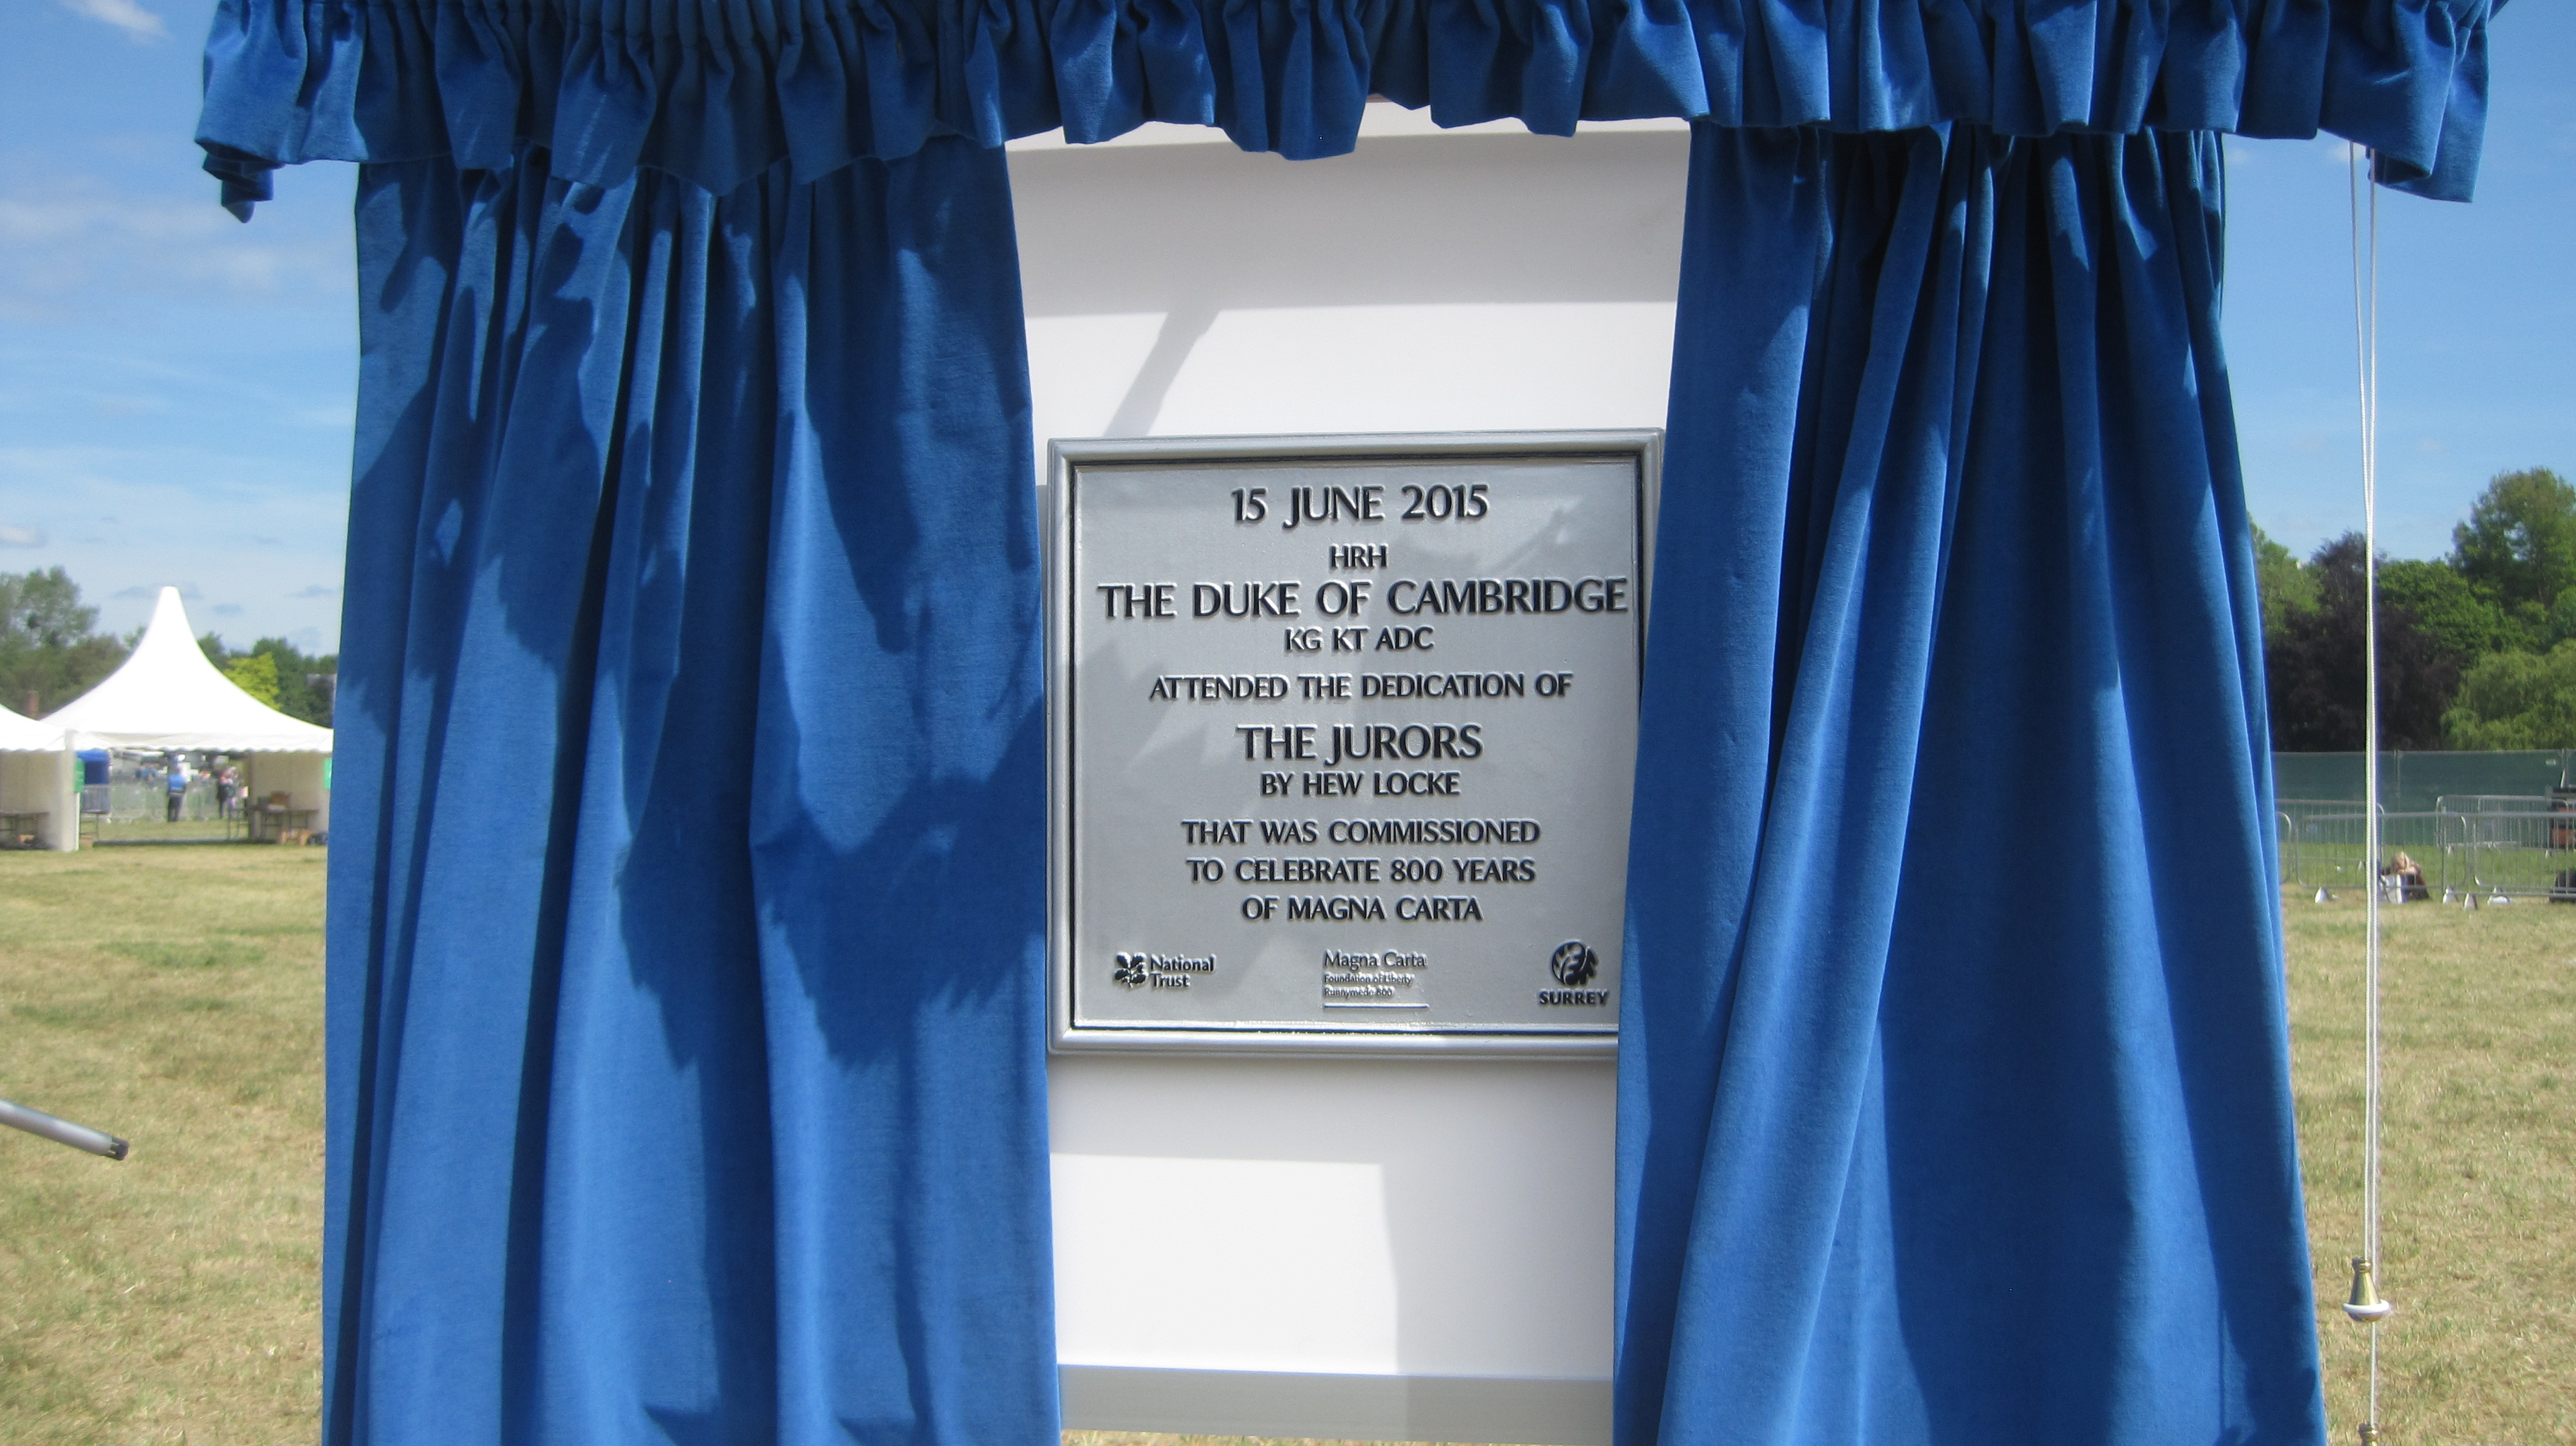 """Duke of Cambridge attended the dedication of """"The Jurors"""" - photo by Juliamaud"""